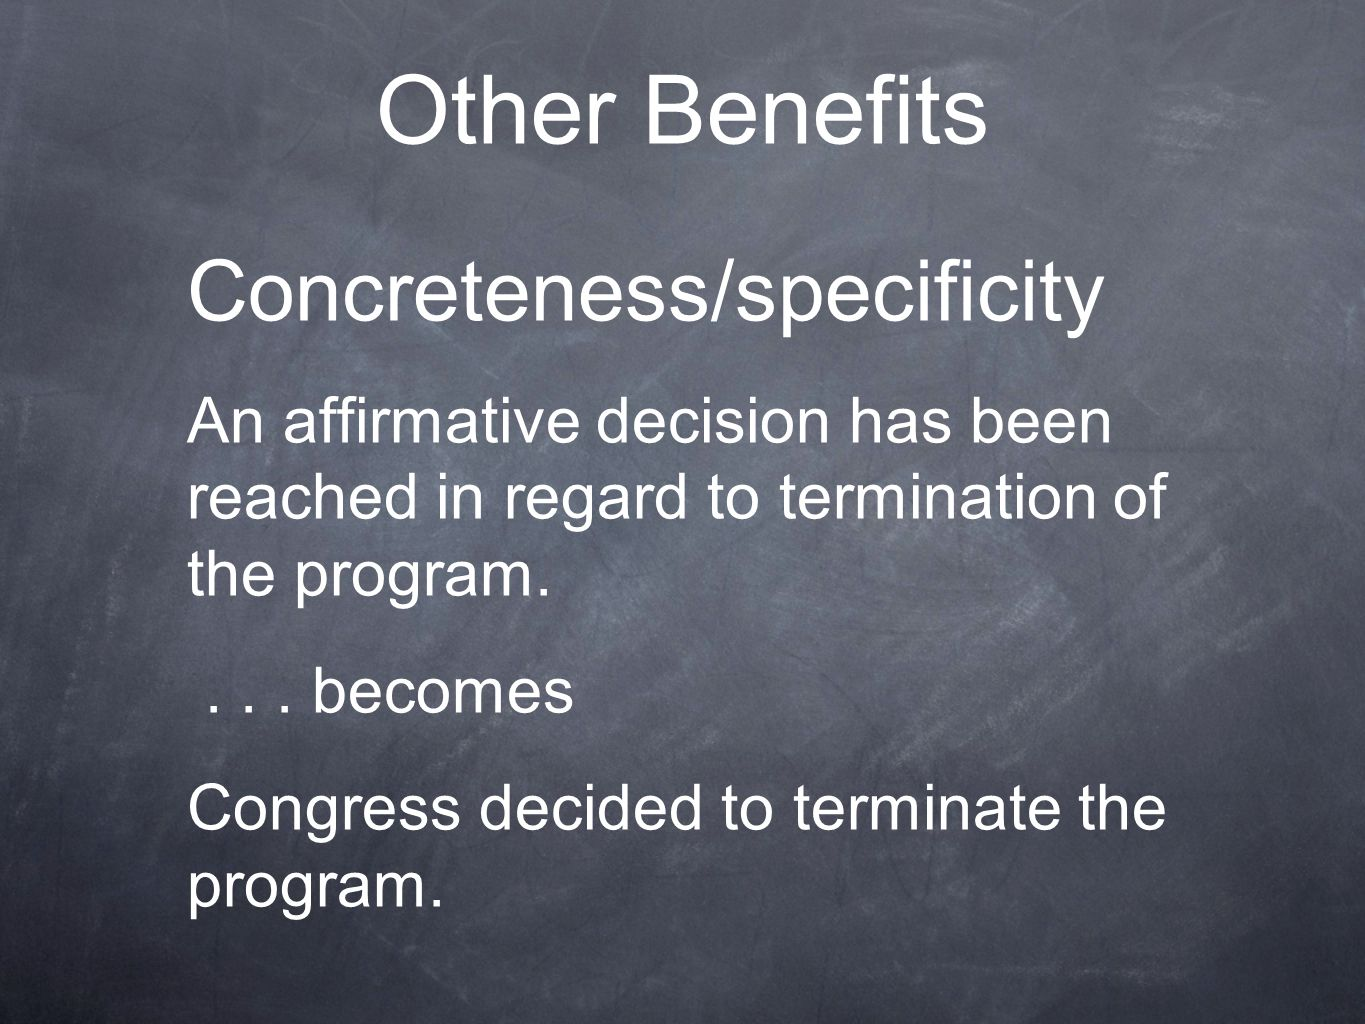 Other Benefits Concreteness/specificity An affirmative decision has been reached in regard to termination of the program....